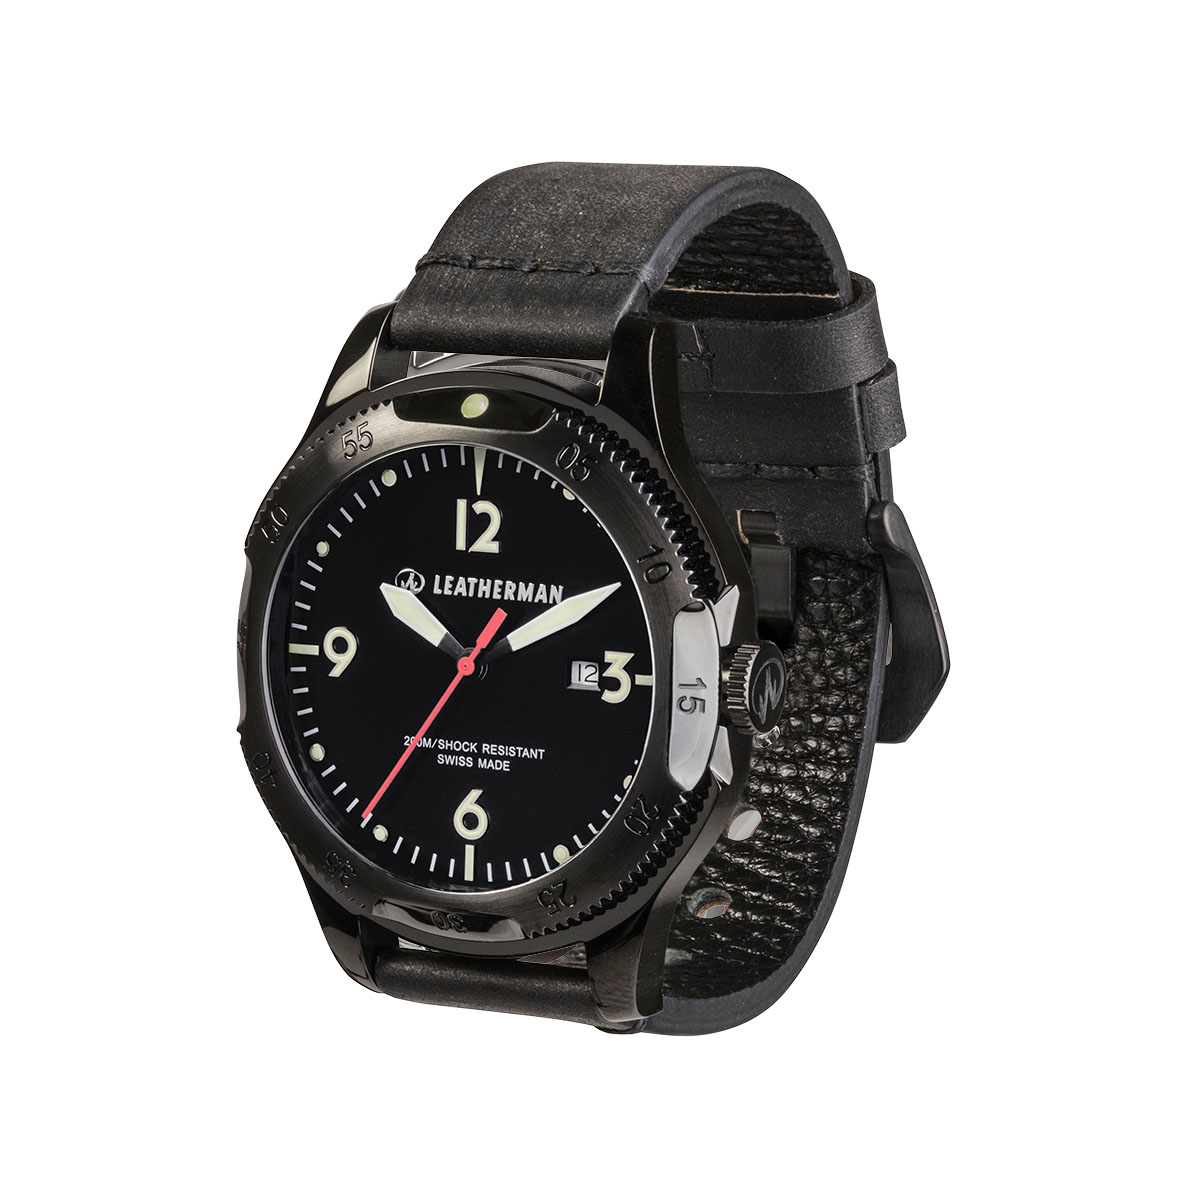 Leatherman 2017 Limited Edition Timepiece Black